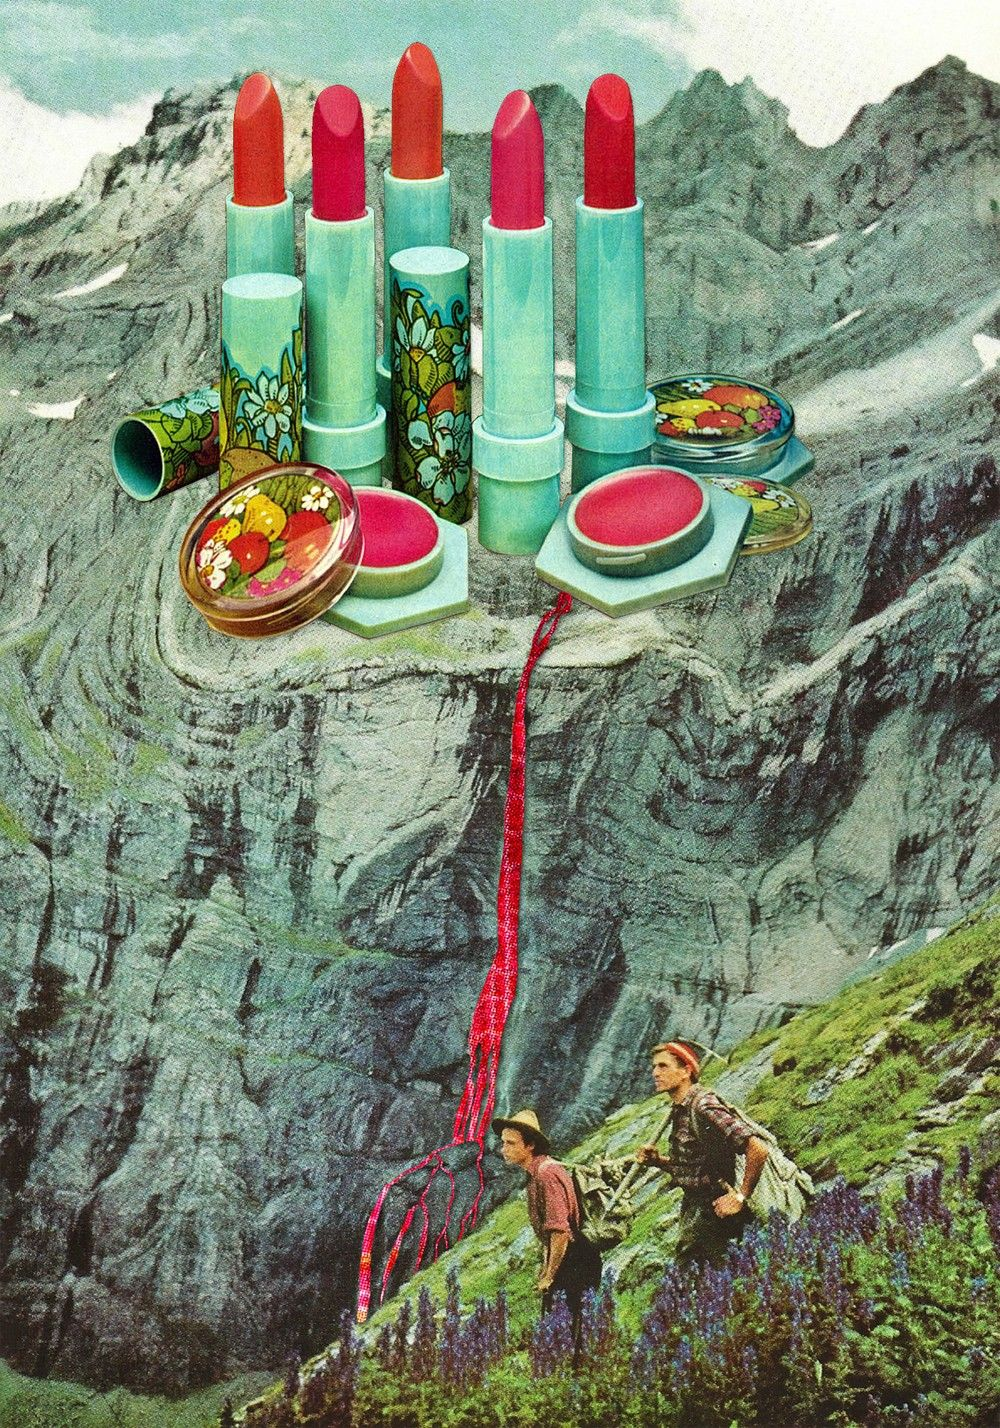 Spring Collection via Eugenia Loli Collage. Click on the image to see more!